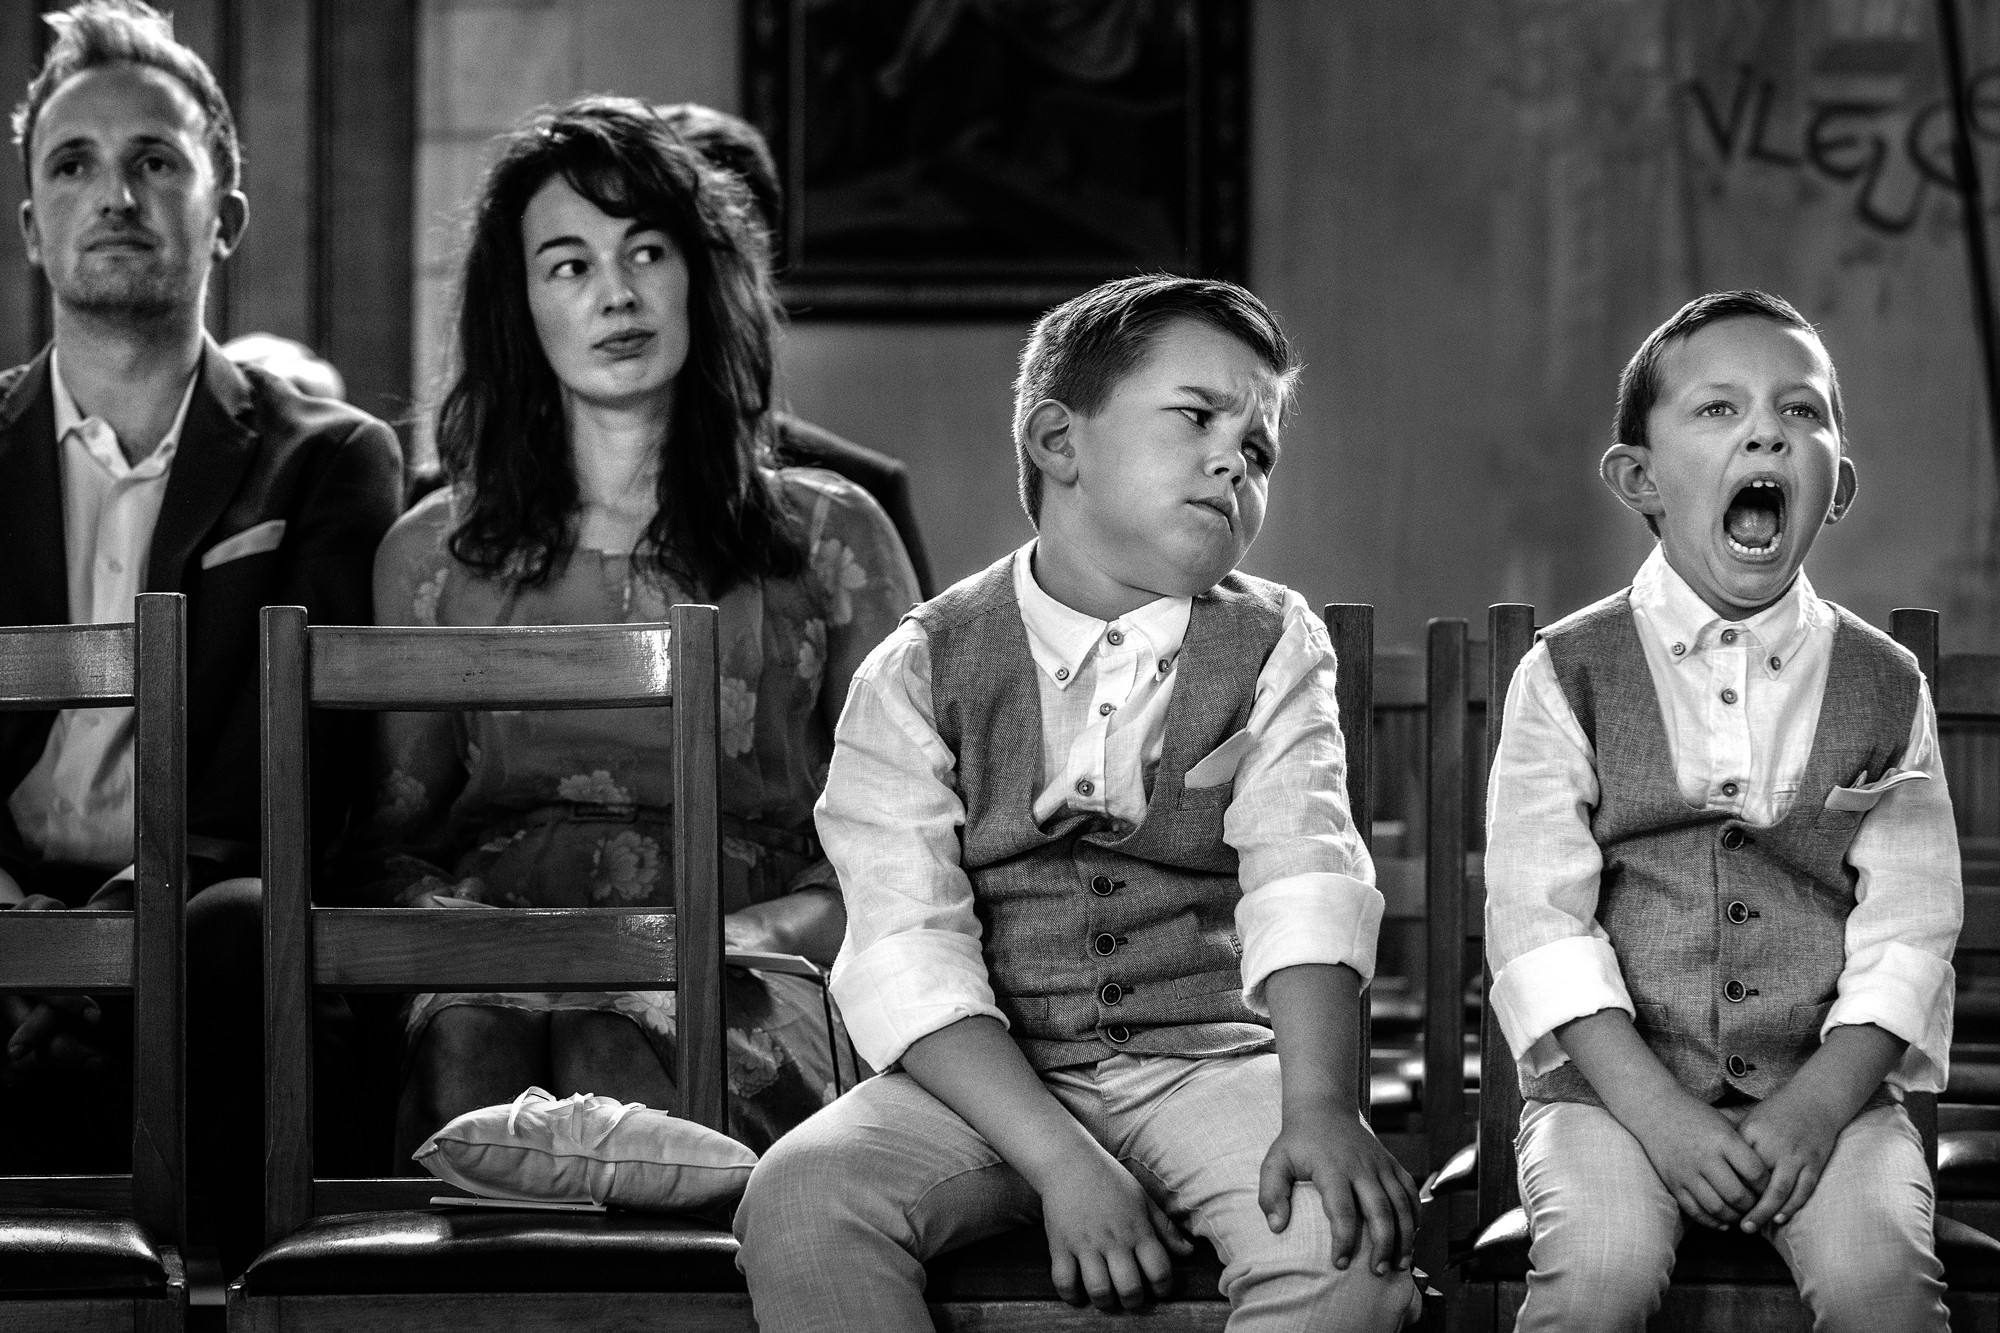 Hilarious photo of little boy yawning at wedding with brother disapproving  by Yves Schepers - Belgium wedding photographer